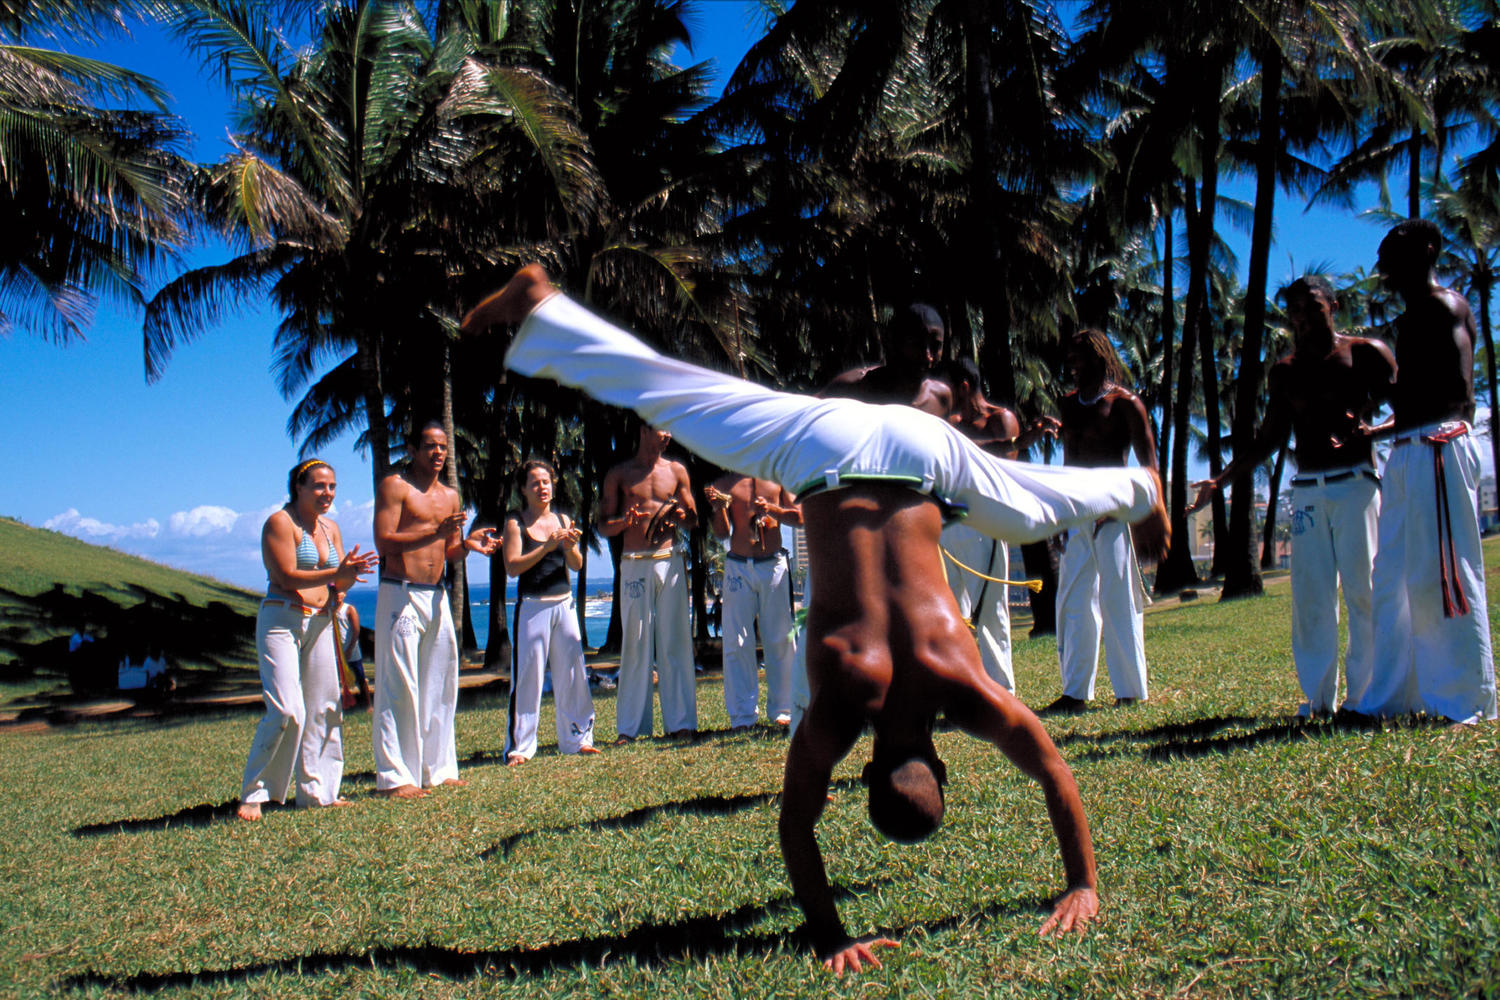 Capoeira is the mixed martial art and dance which is prolific to the culture of Salvador and Bahia